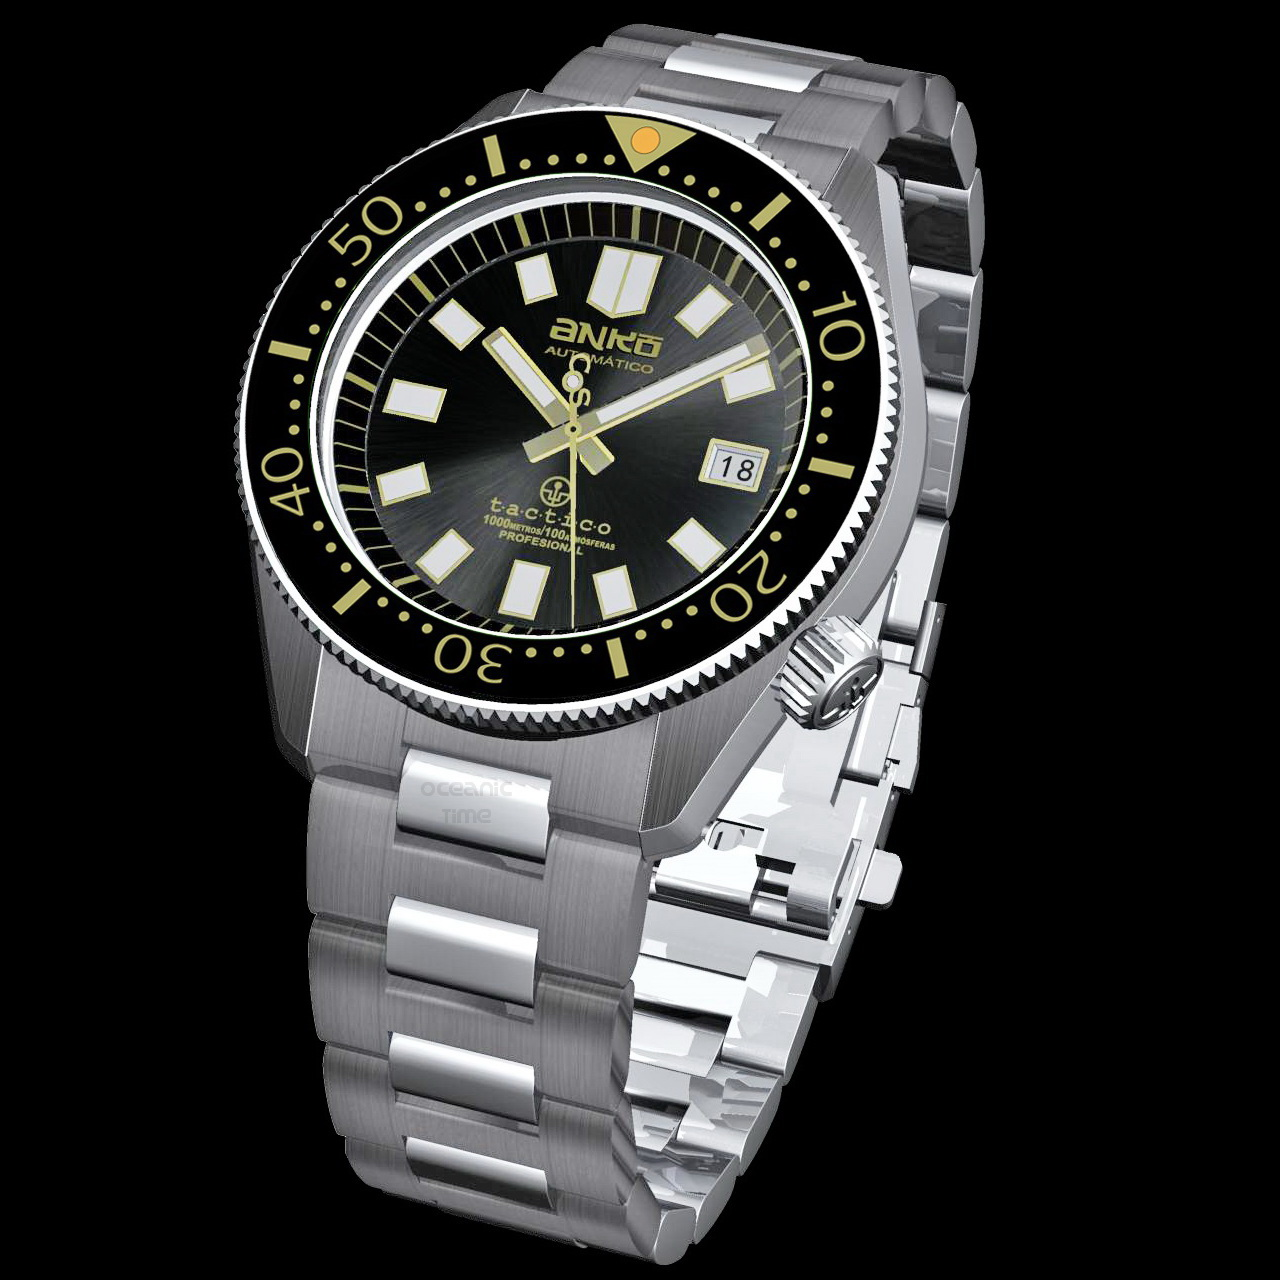 Oceanictime t a c t i c o anko for clubokies - Seiko dive watch history ...